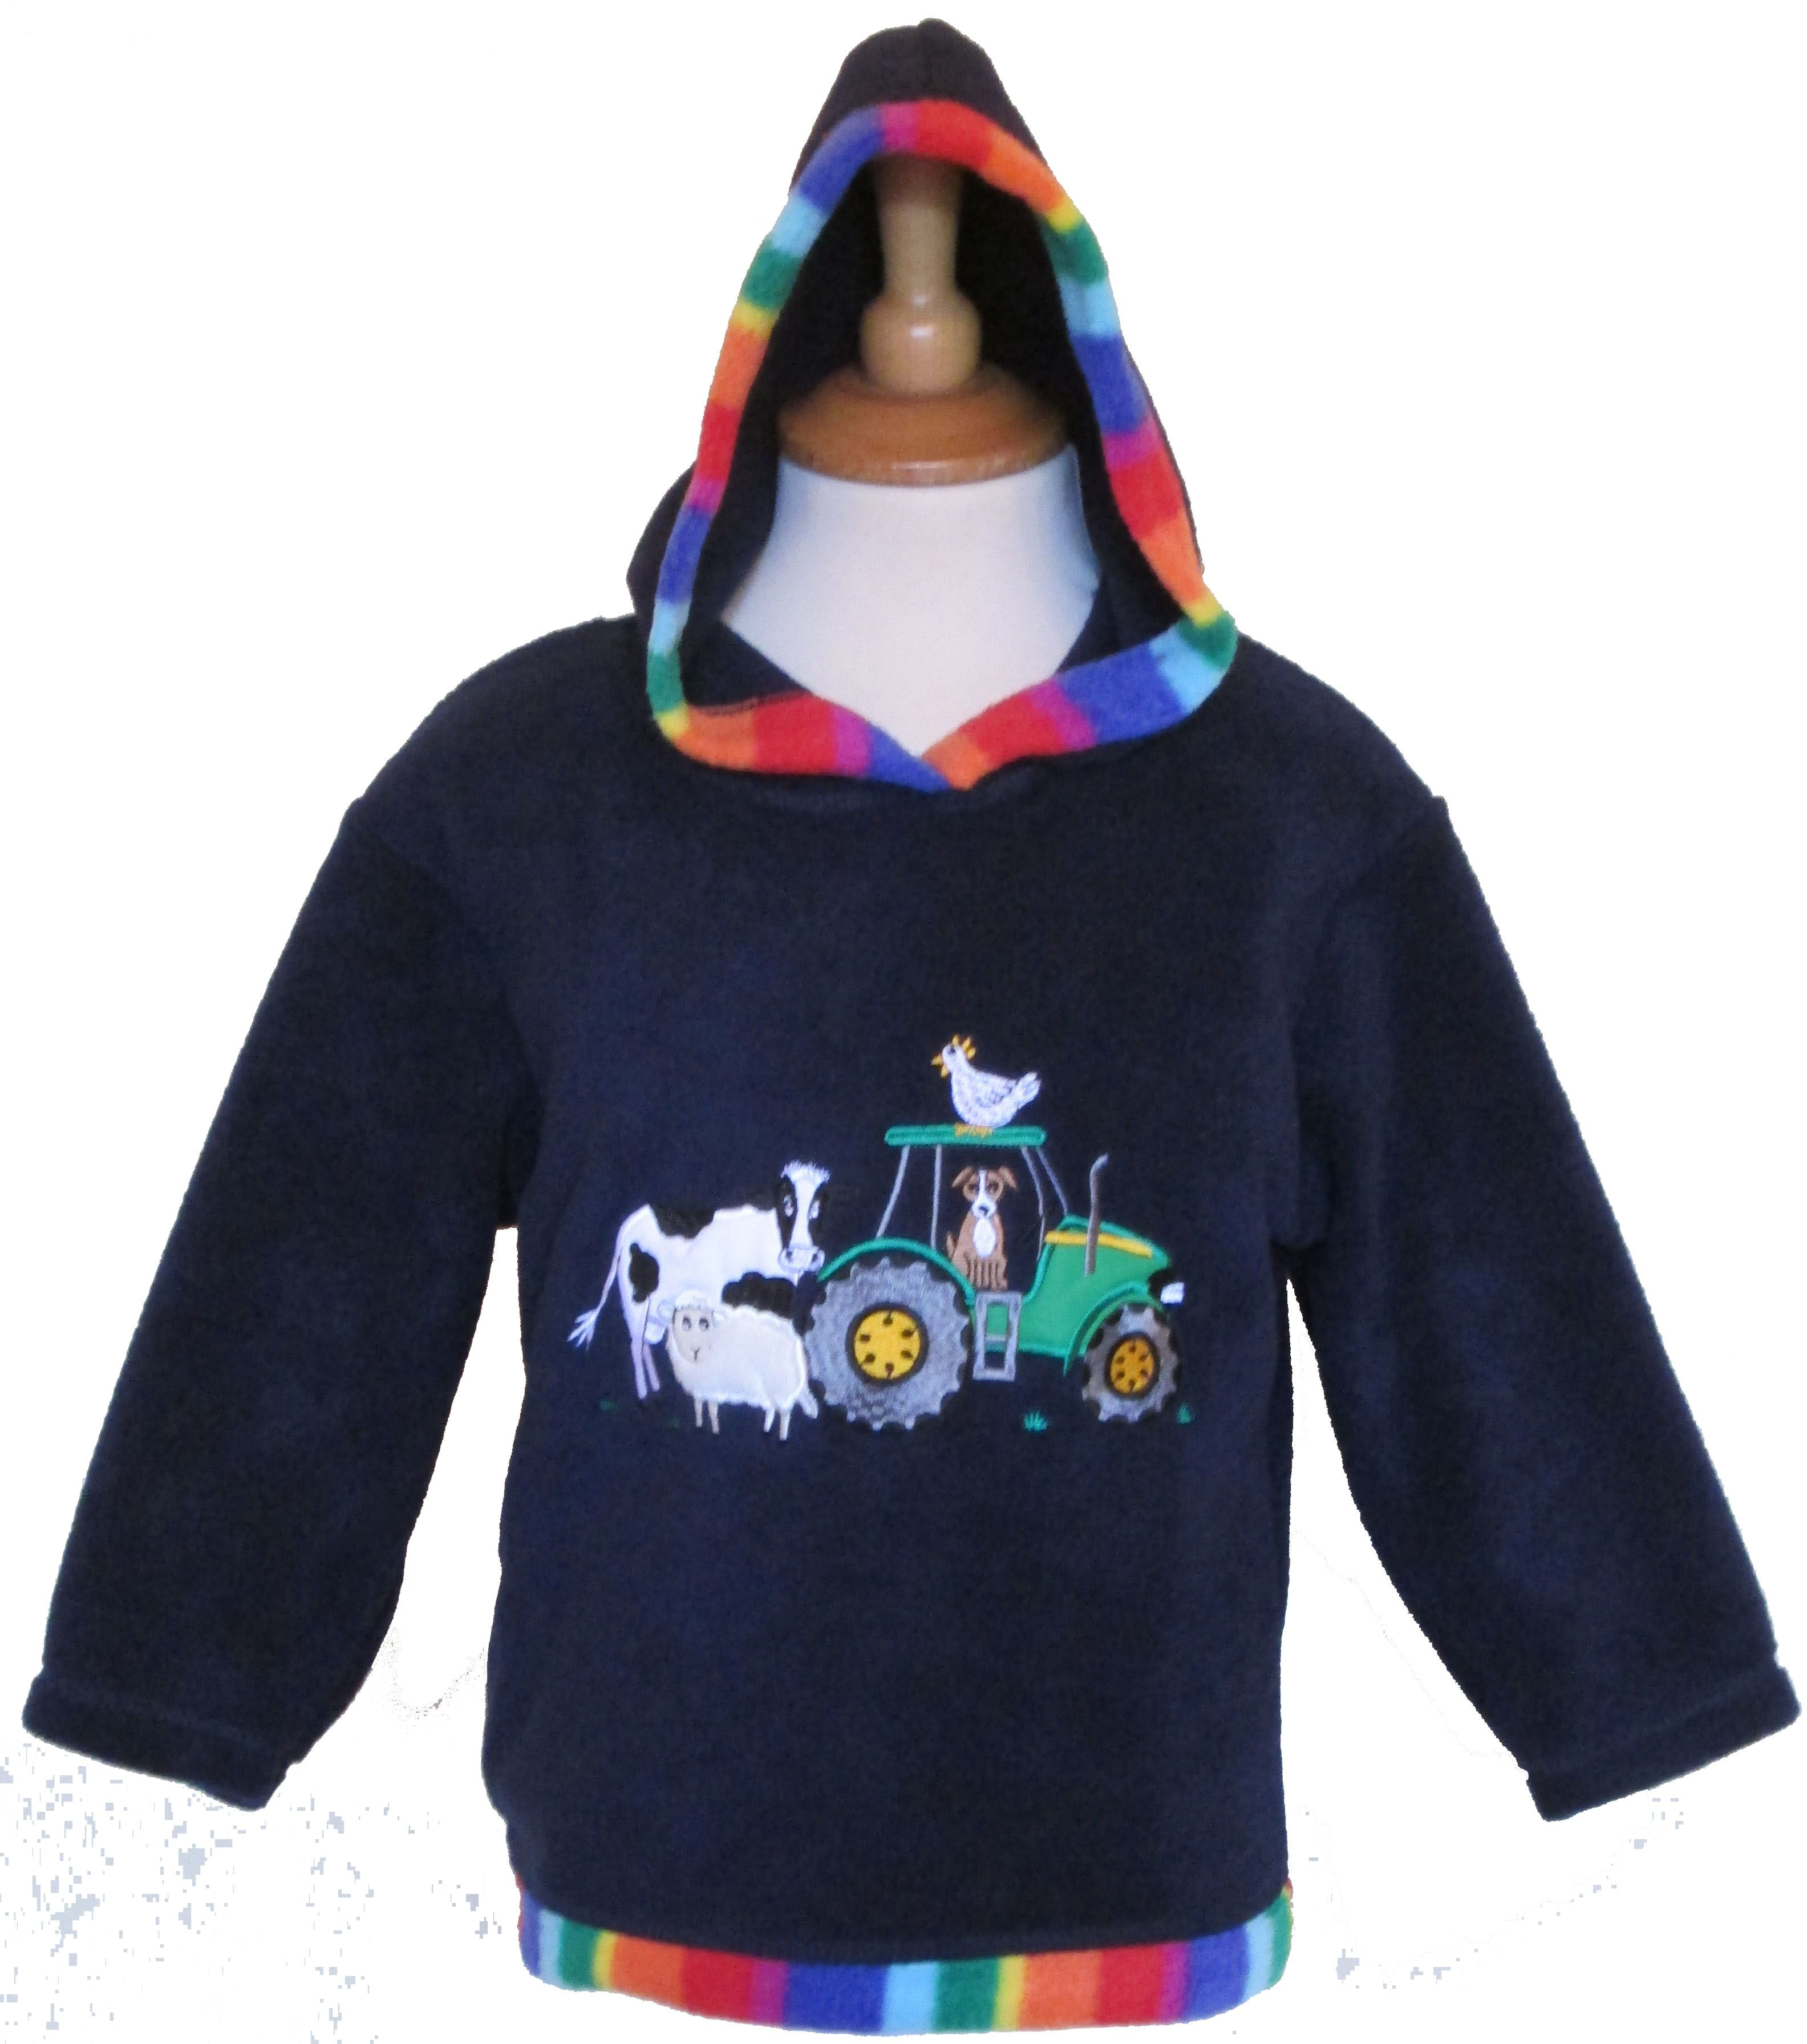 Childs navy fleece hoodie with embroidered farmyard design